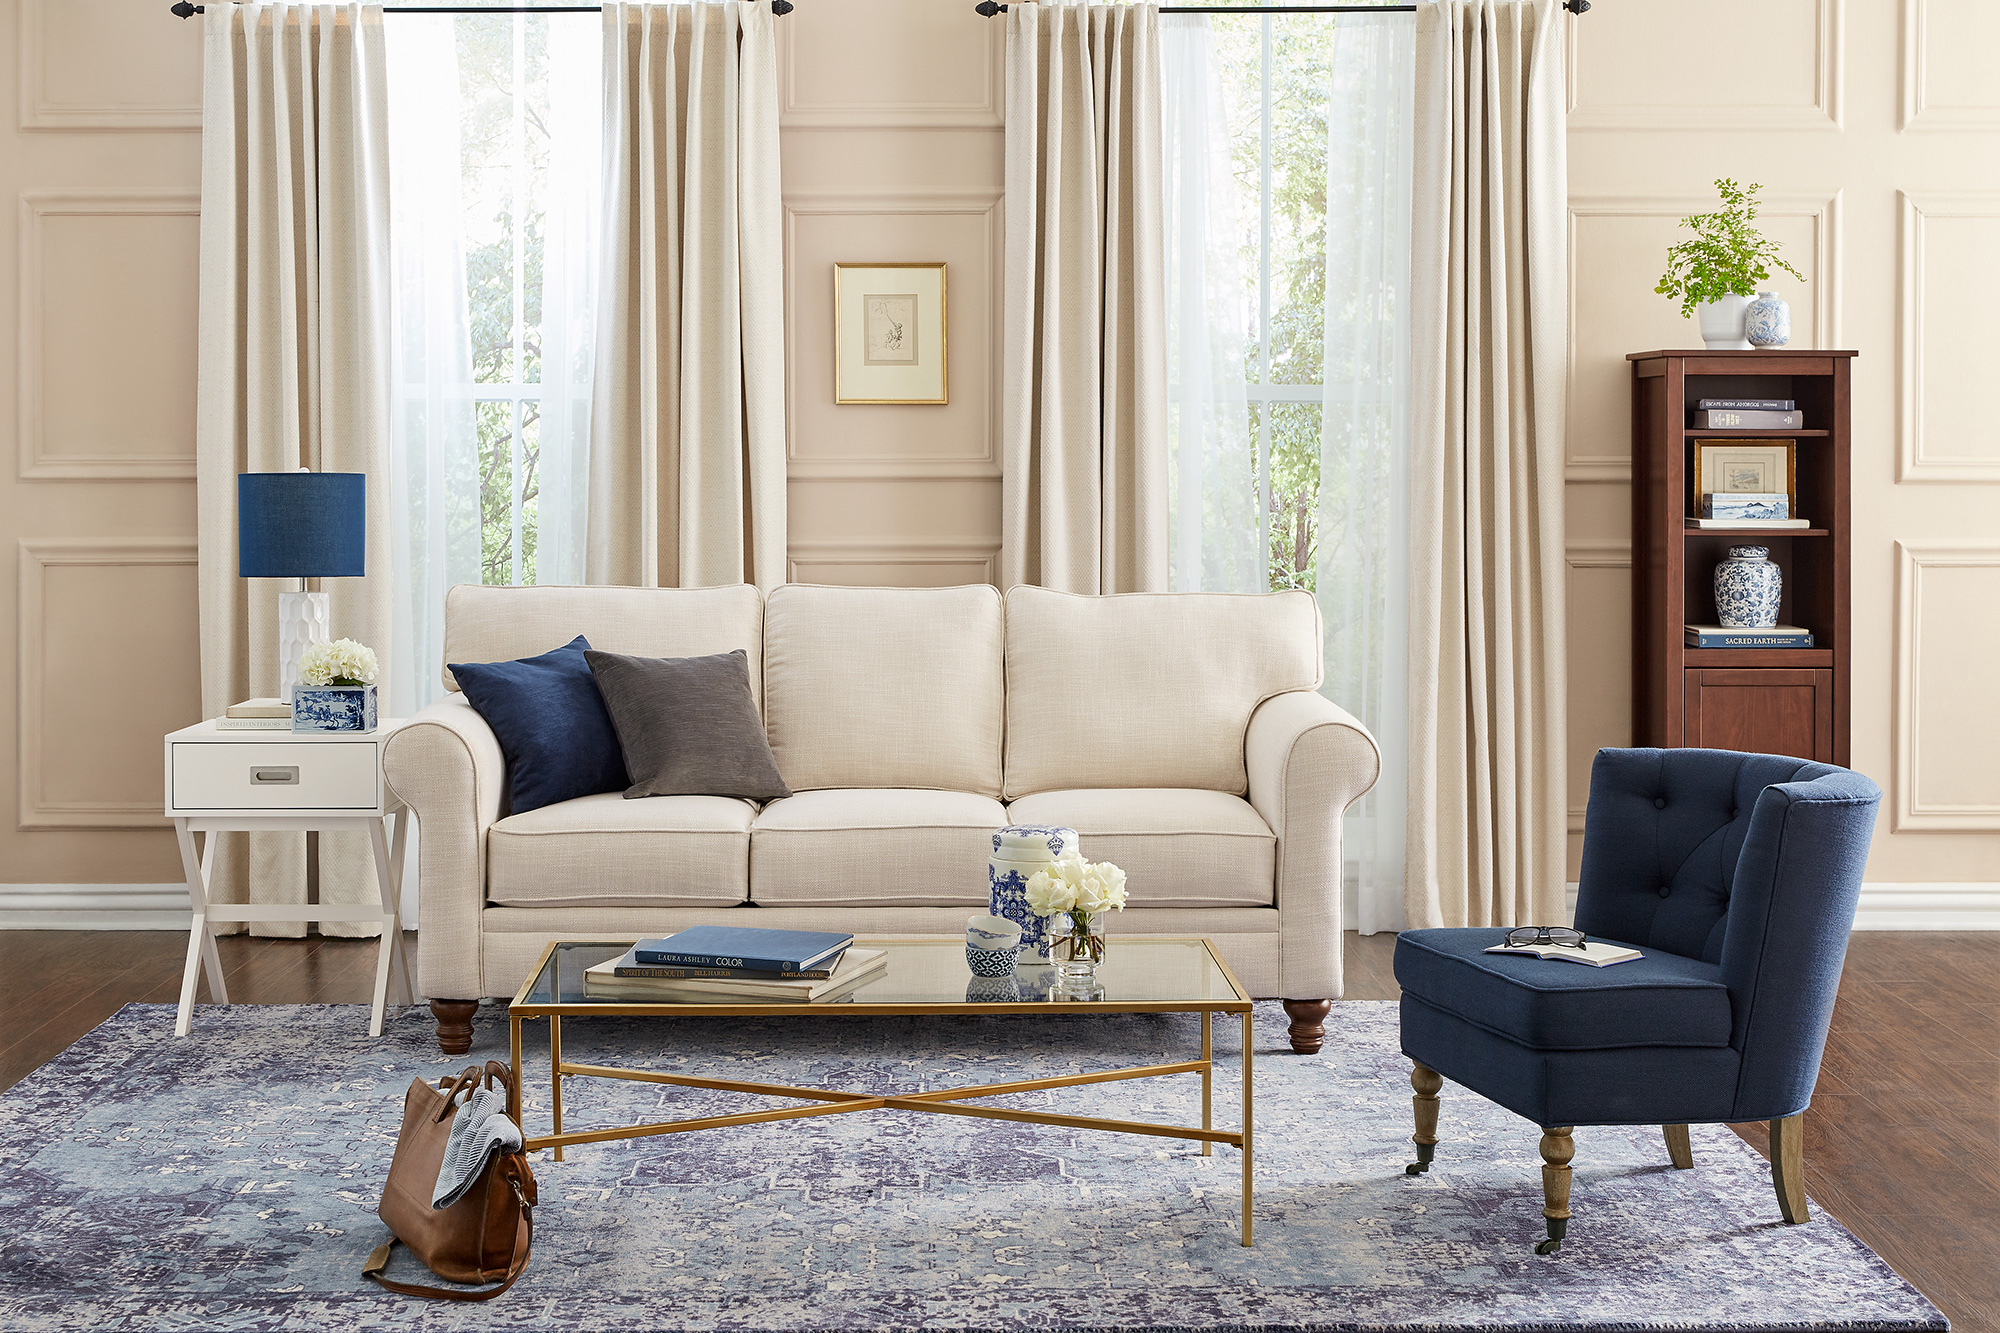 new tall icicle accent table ravenna home living nate berkus glass agate launches its own furnishings collection take peek the affordable items side with wicker drawers tiffany